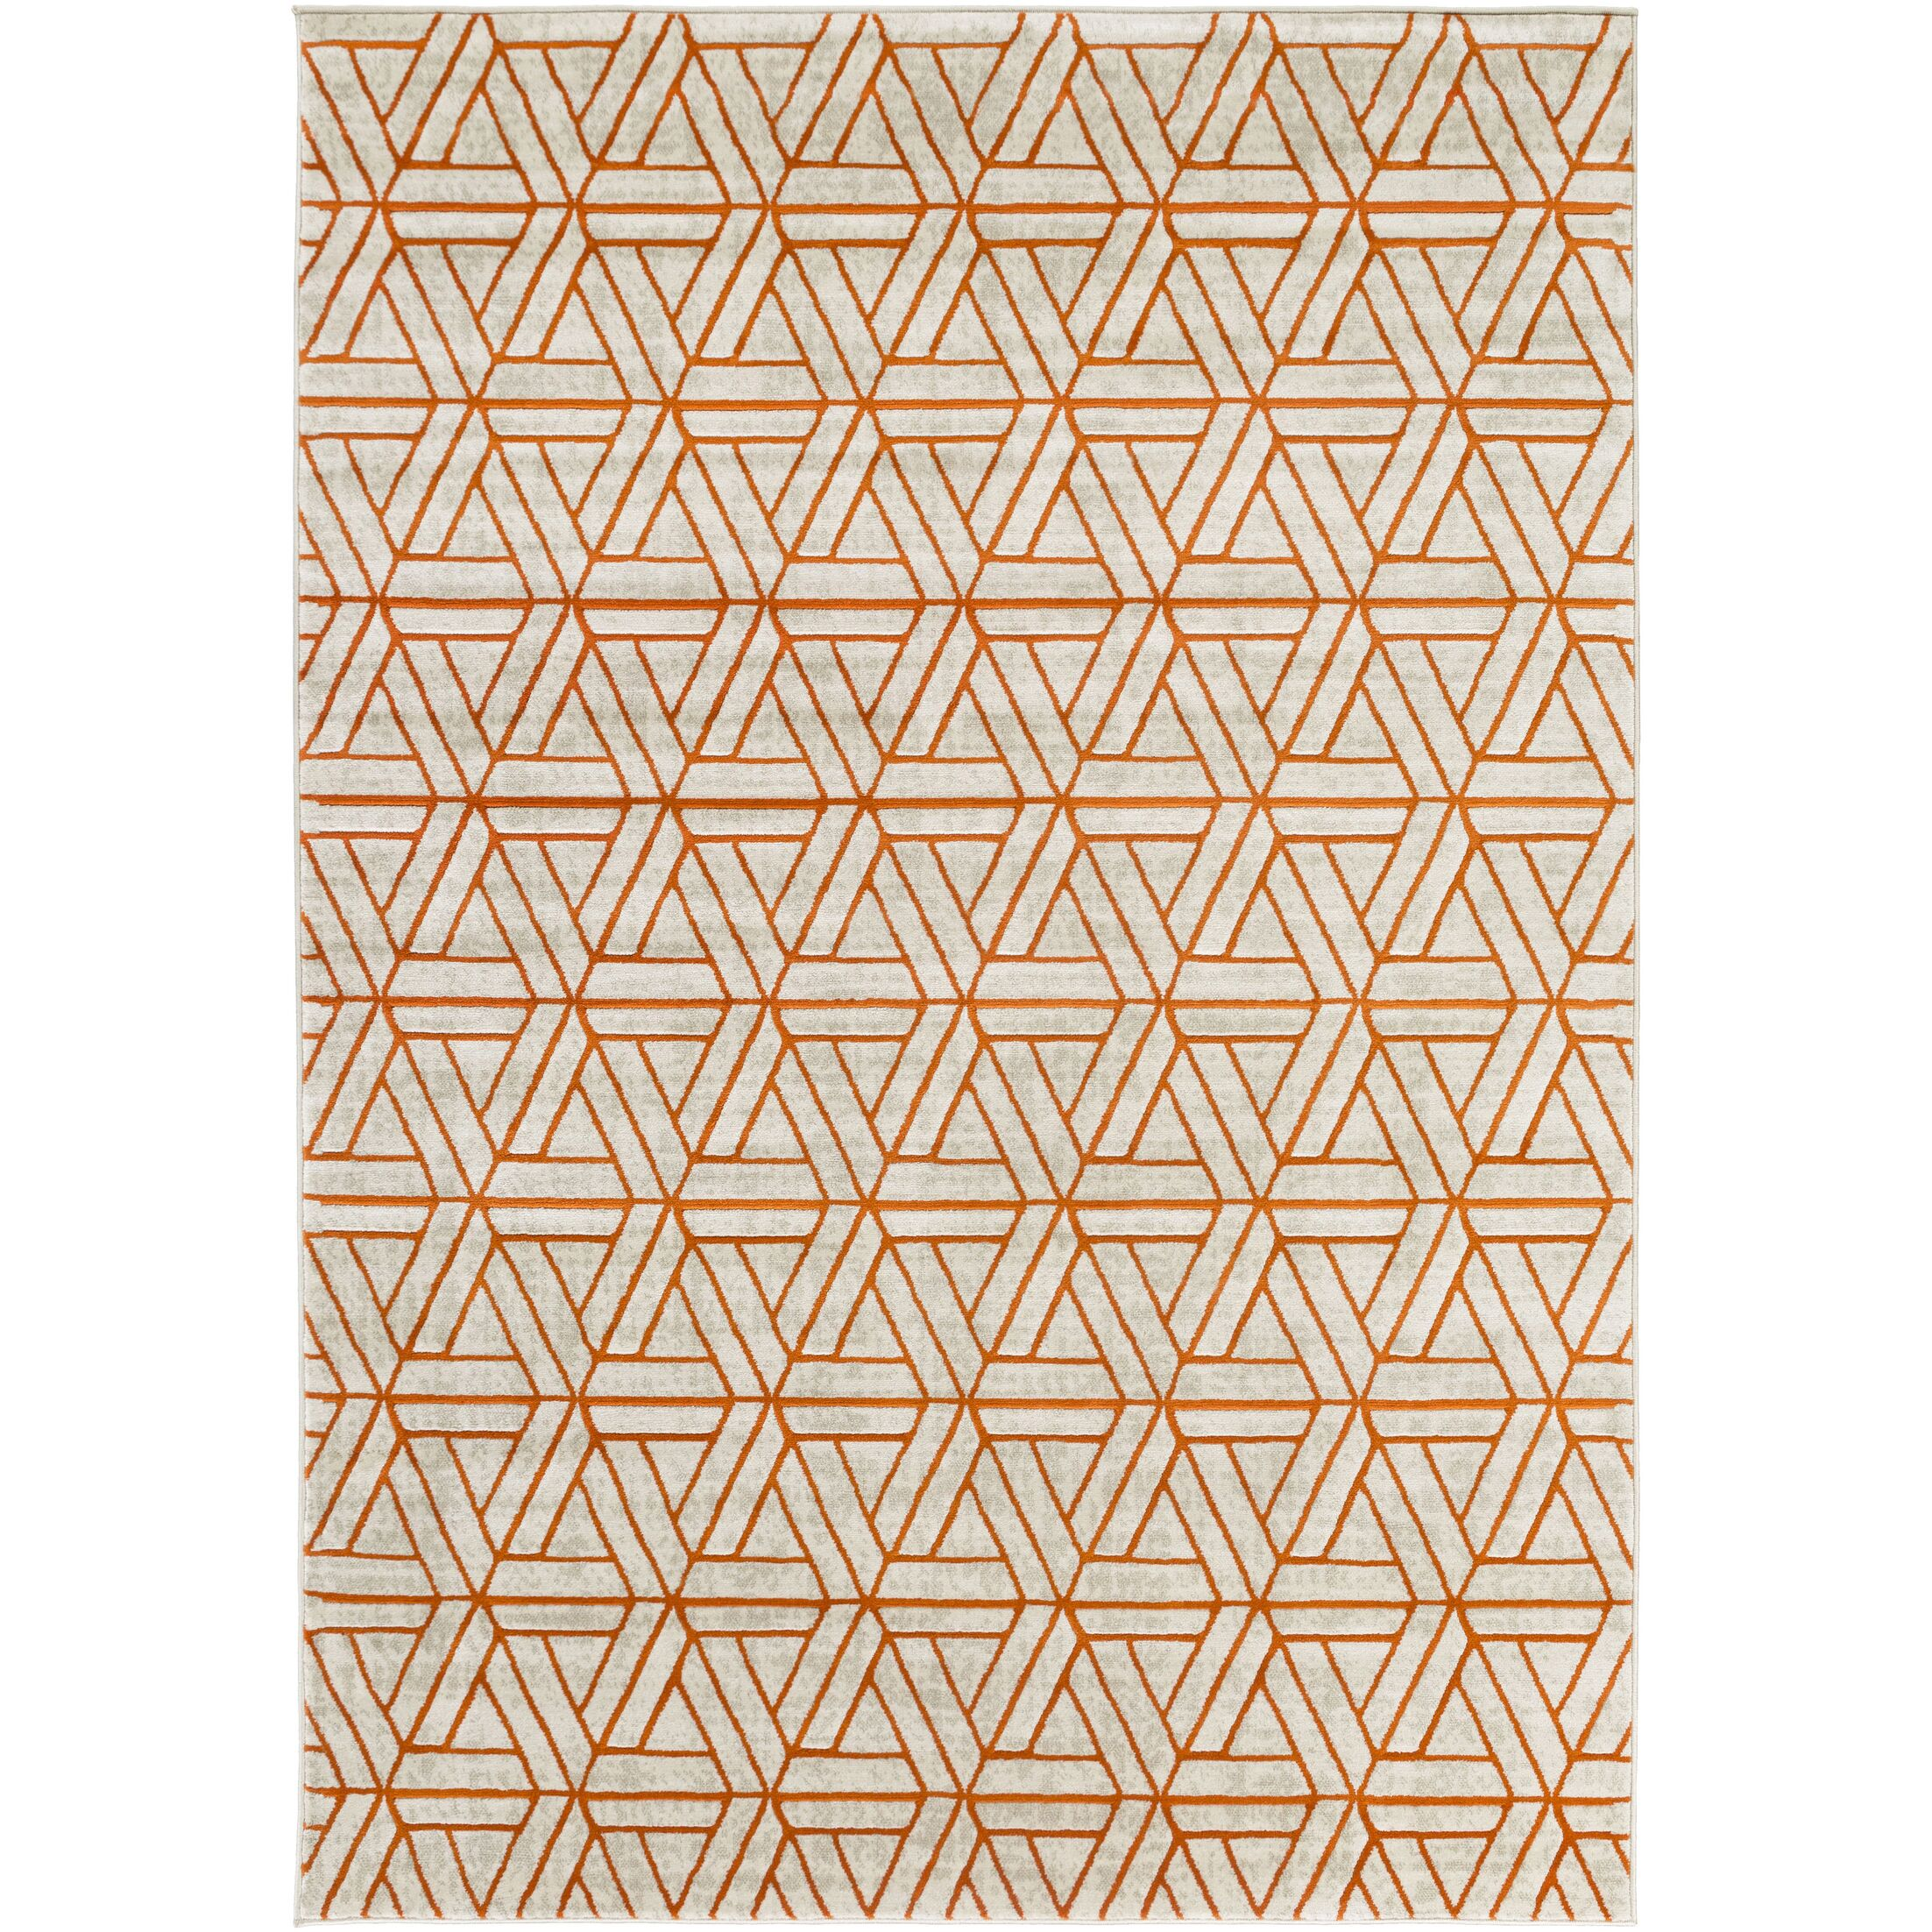 Ginsberg Light Gray/Burnt Orange Area Rug Rug Size: Rectangle 7'6